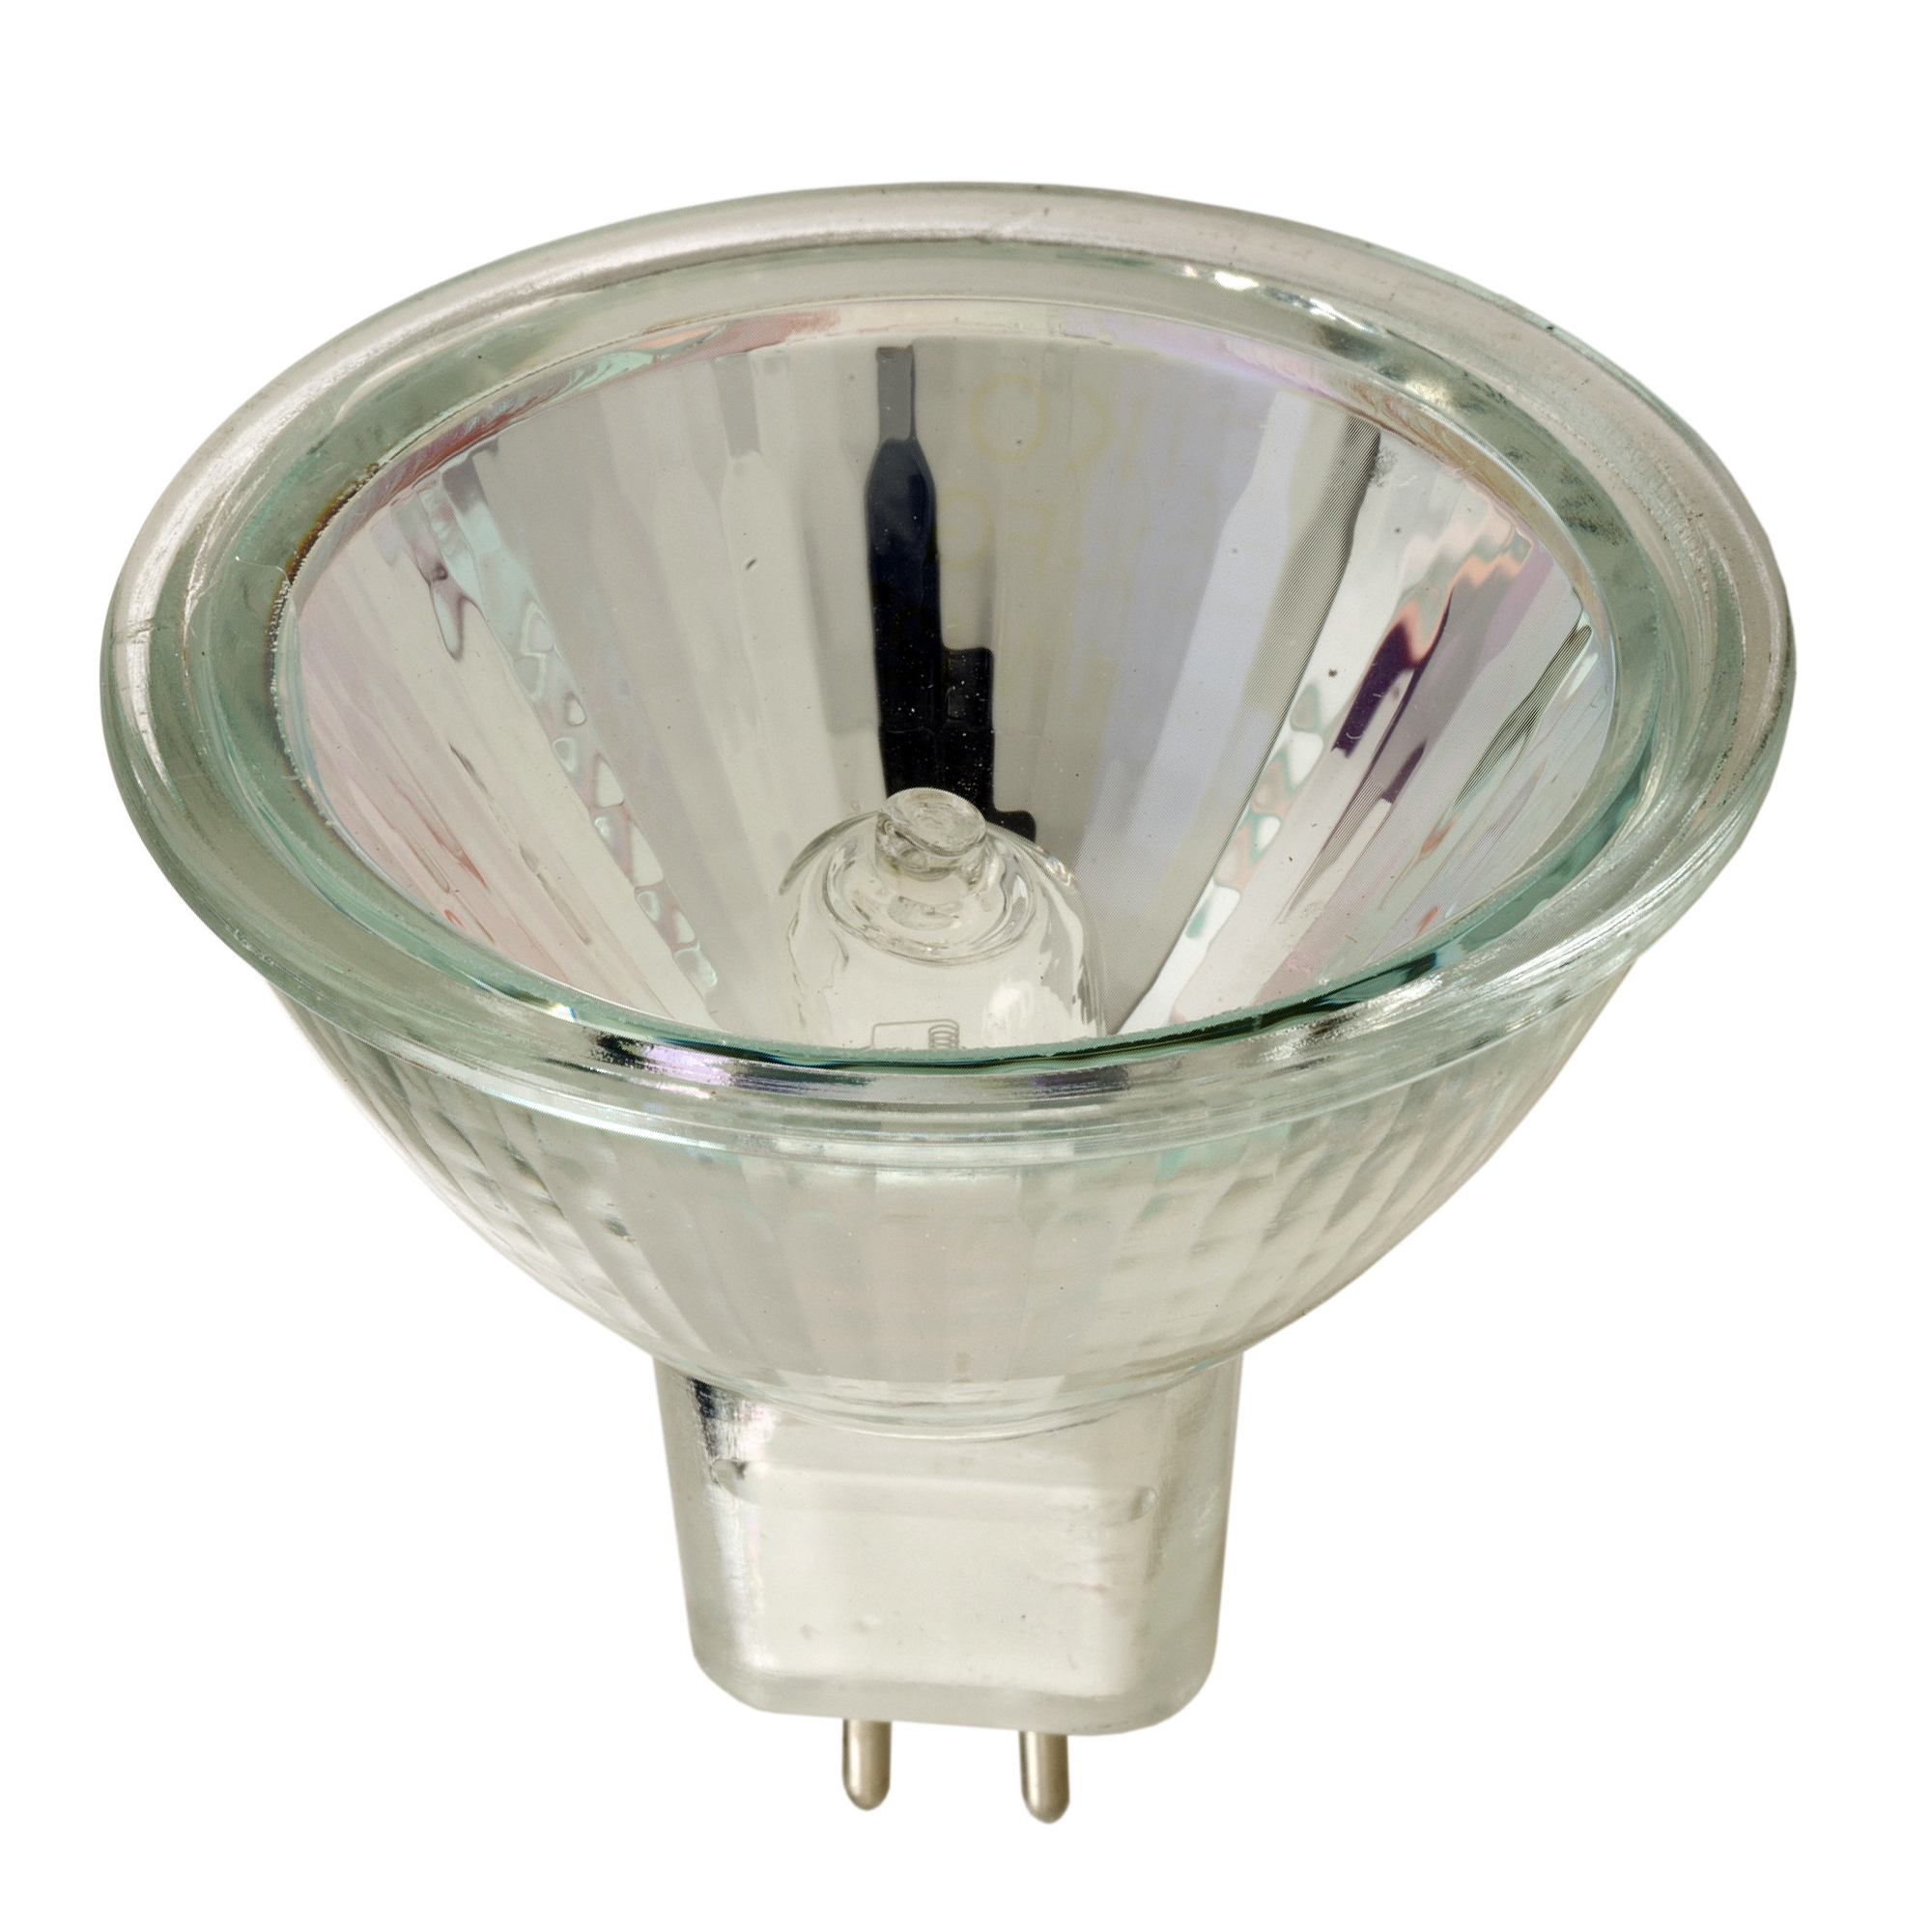 Sylvania 20MR16/IR/NFL25/C MR16 Tru-Aim IR GU5.3 Base 20W 12V 25 Degree Bulb (20 Pack)